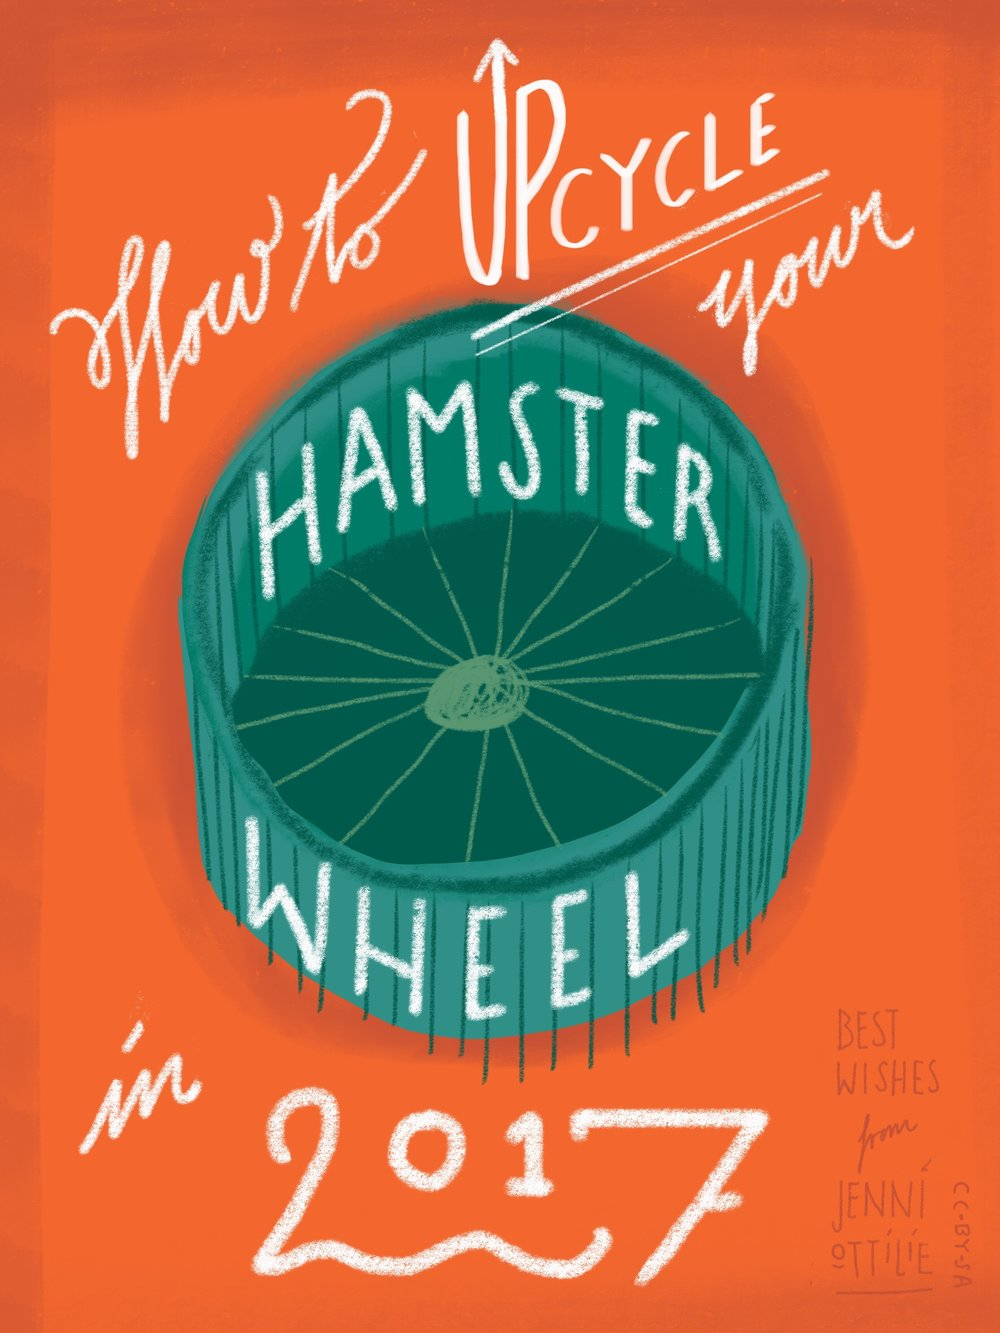 01_Titlepage_How_to_Upcycle_Your_hamsterwheel_CC-BY-SA_JenniOttilieKeppler.jpg